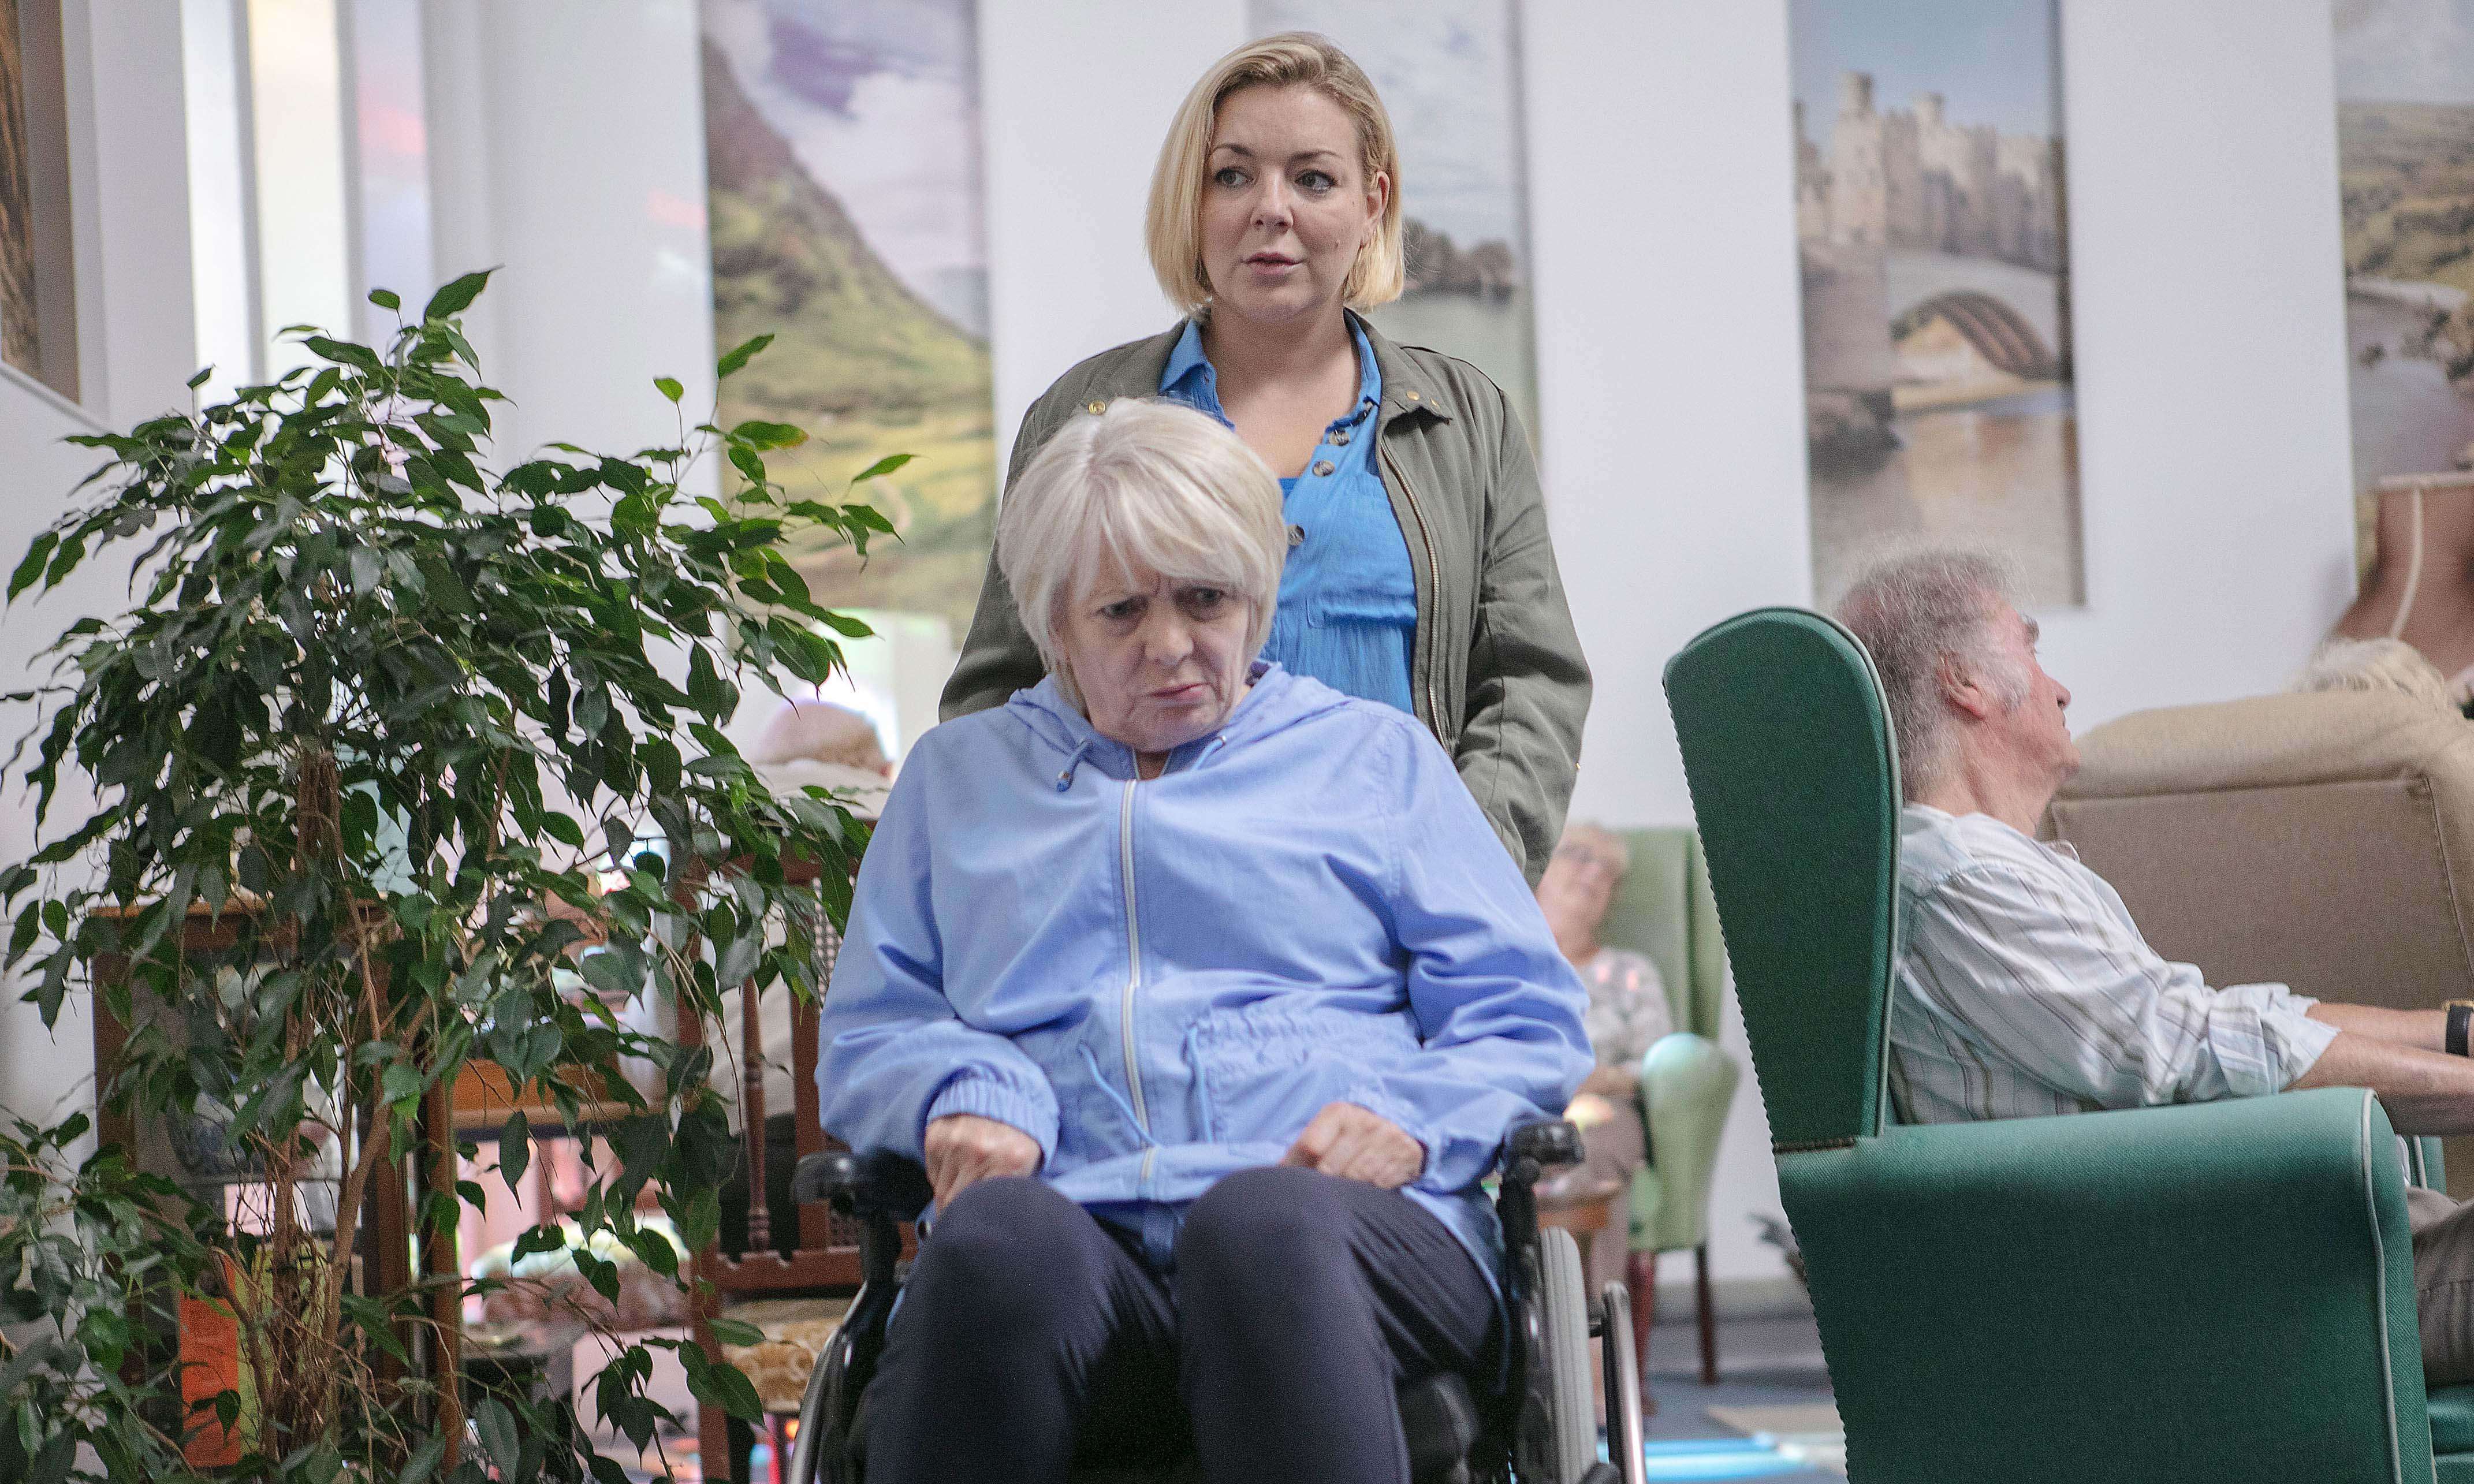 Care review – Sheridan Smith excels in delicately observed drama